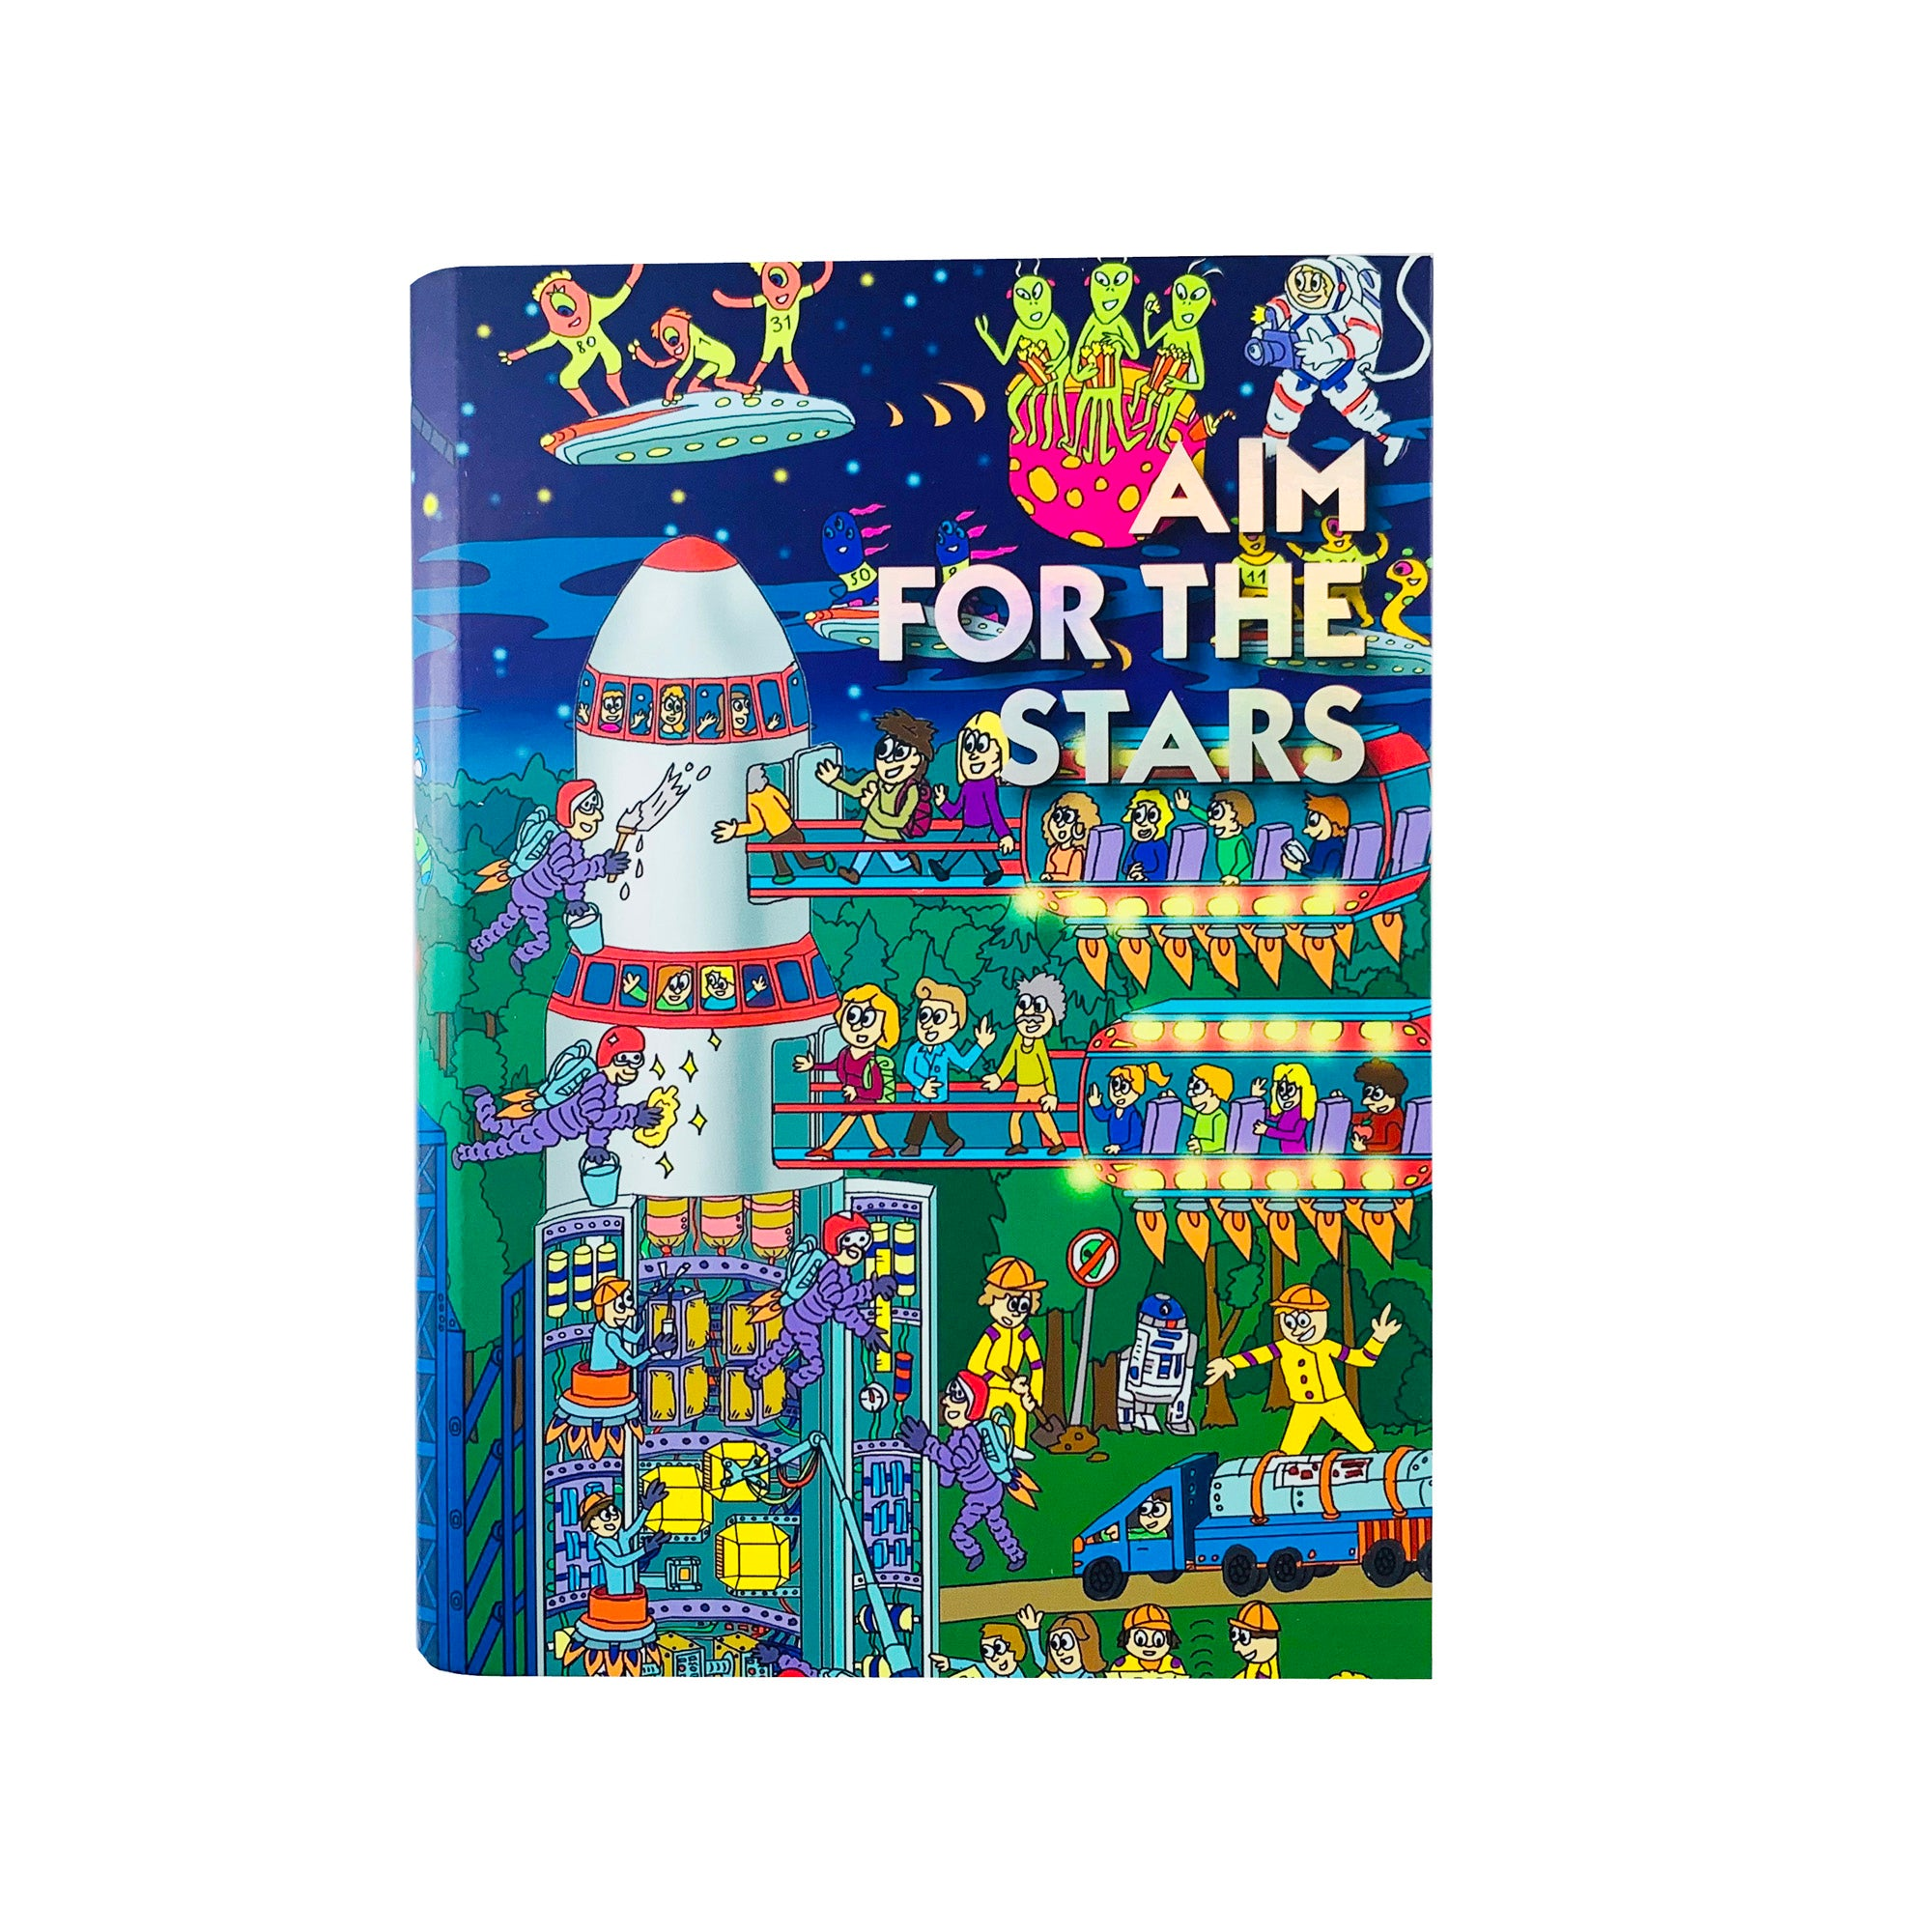 Epic Journal - Aim for the Stars Rocket